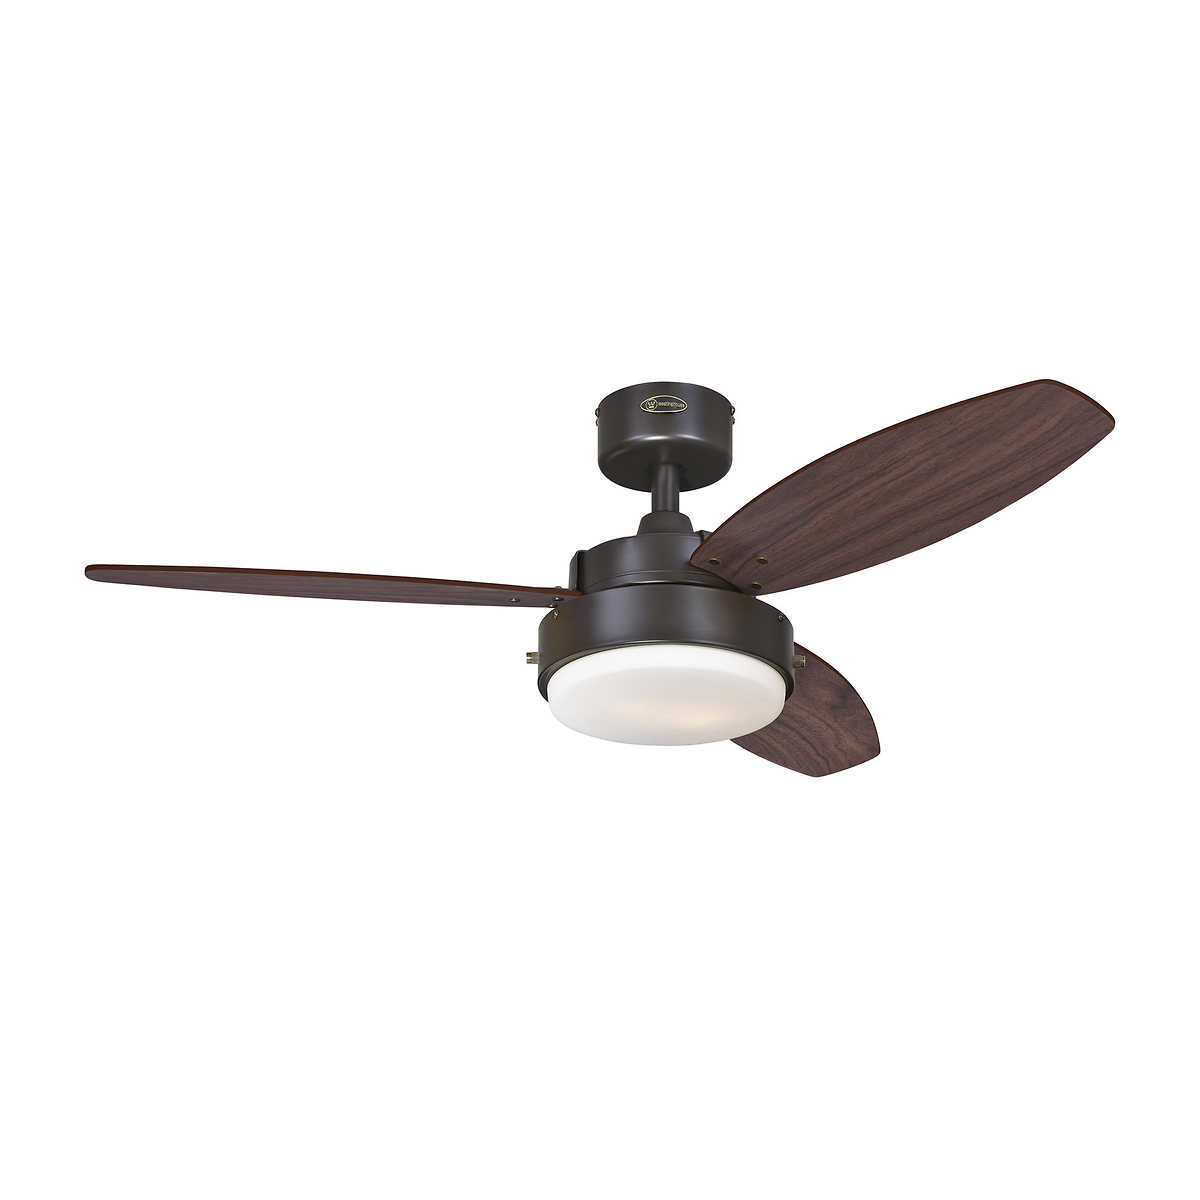 retrofit inspirational ceiling beautiful fans led of awesome recessed drop diffuser costco light lighting at